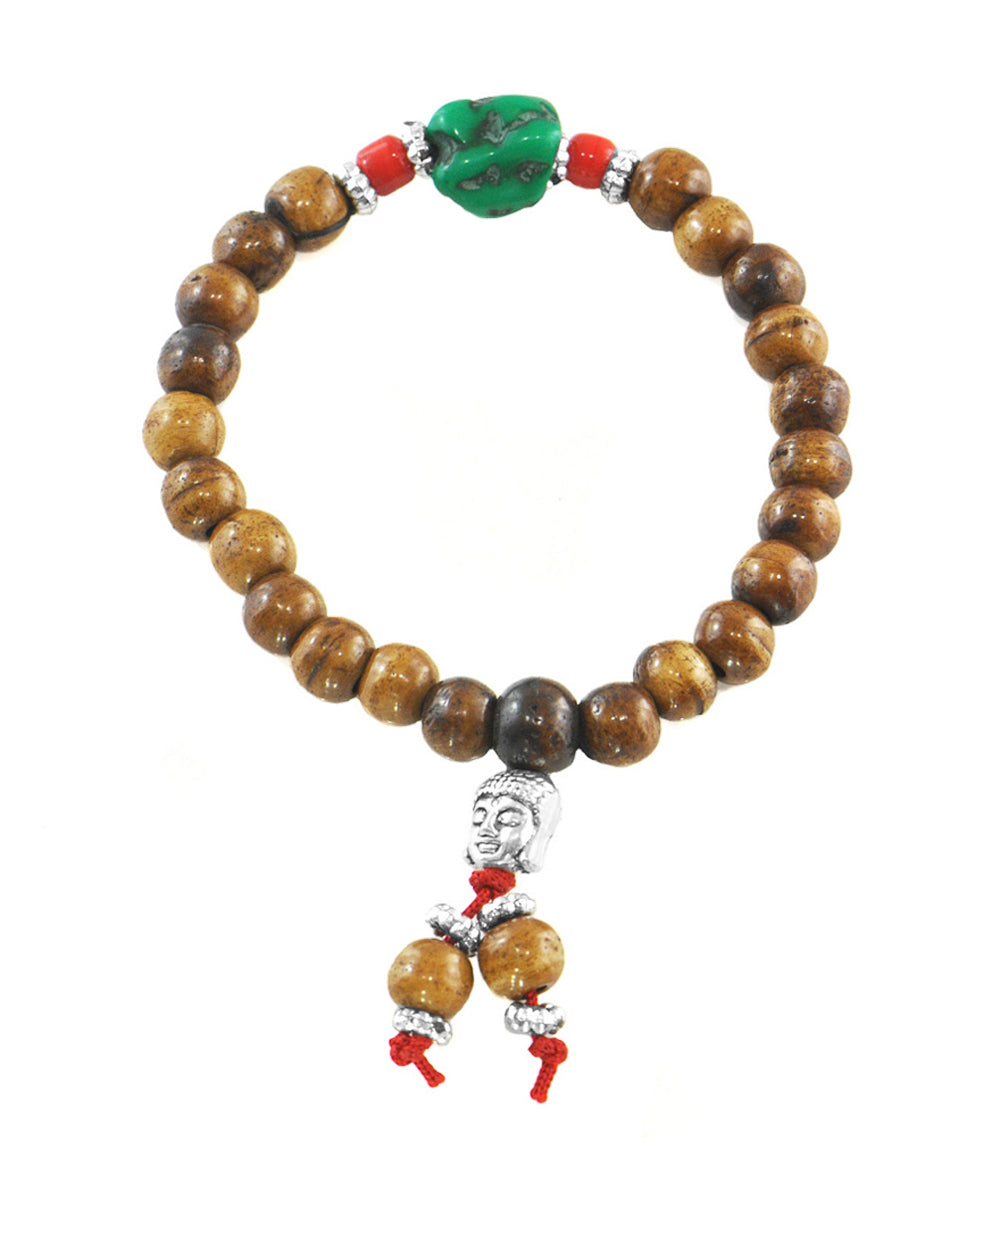 Buddhist Meditation Brown Yak Bone Beads Wrist Mala